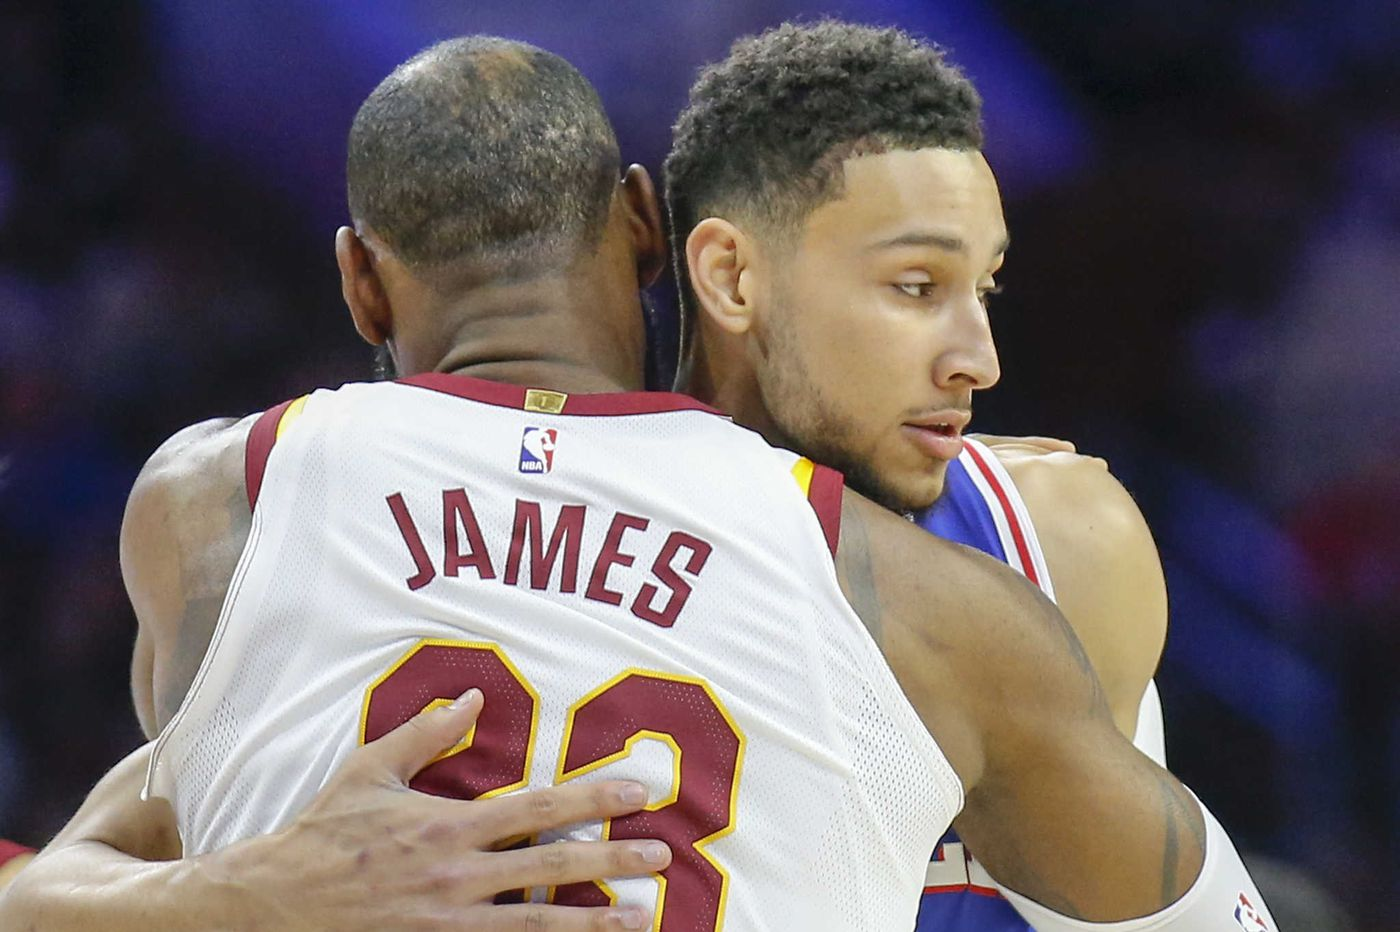 Sixers' Joel Embiid and Ben Simmons drafted to Team Giannis, but a trade sends Simmons to Team LeBron in NBA All-Star Game